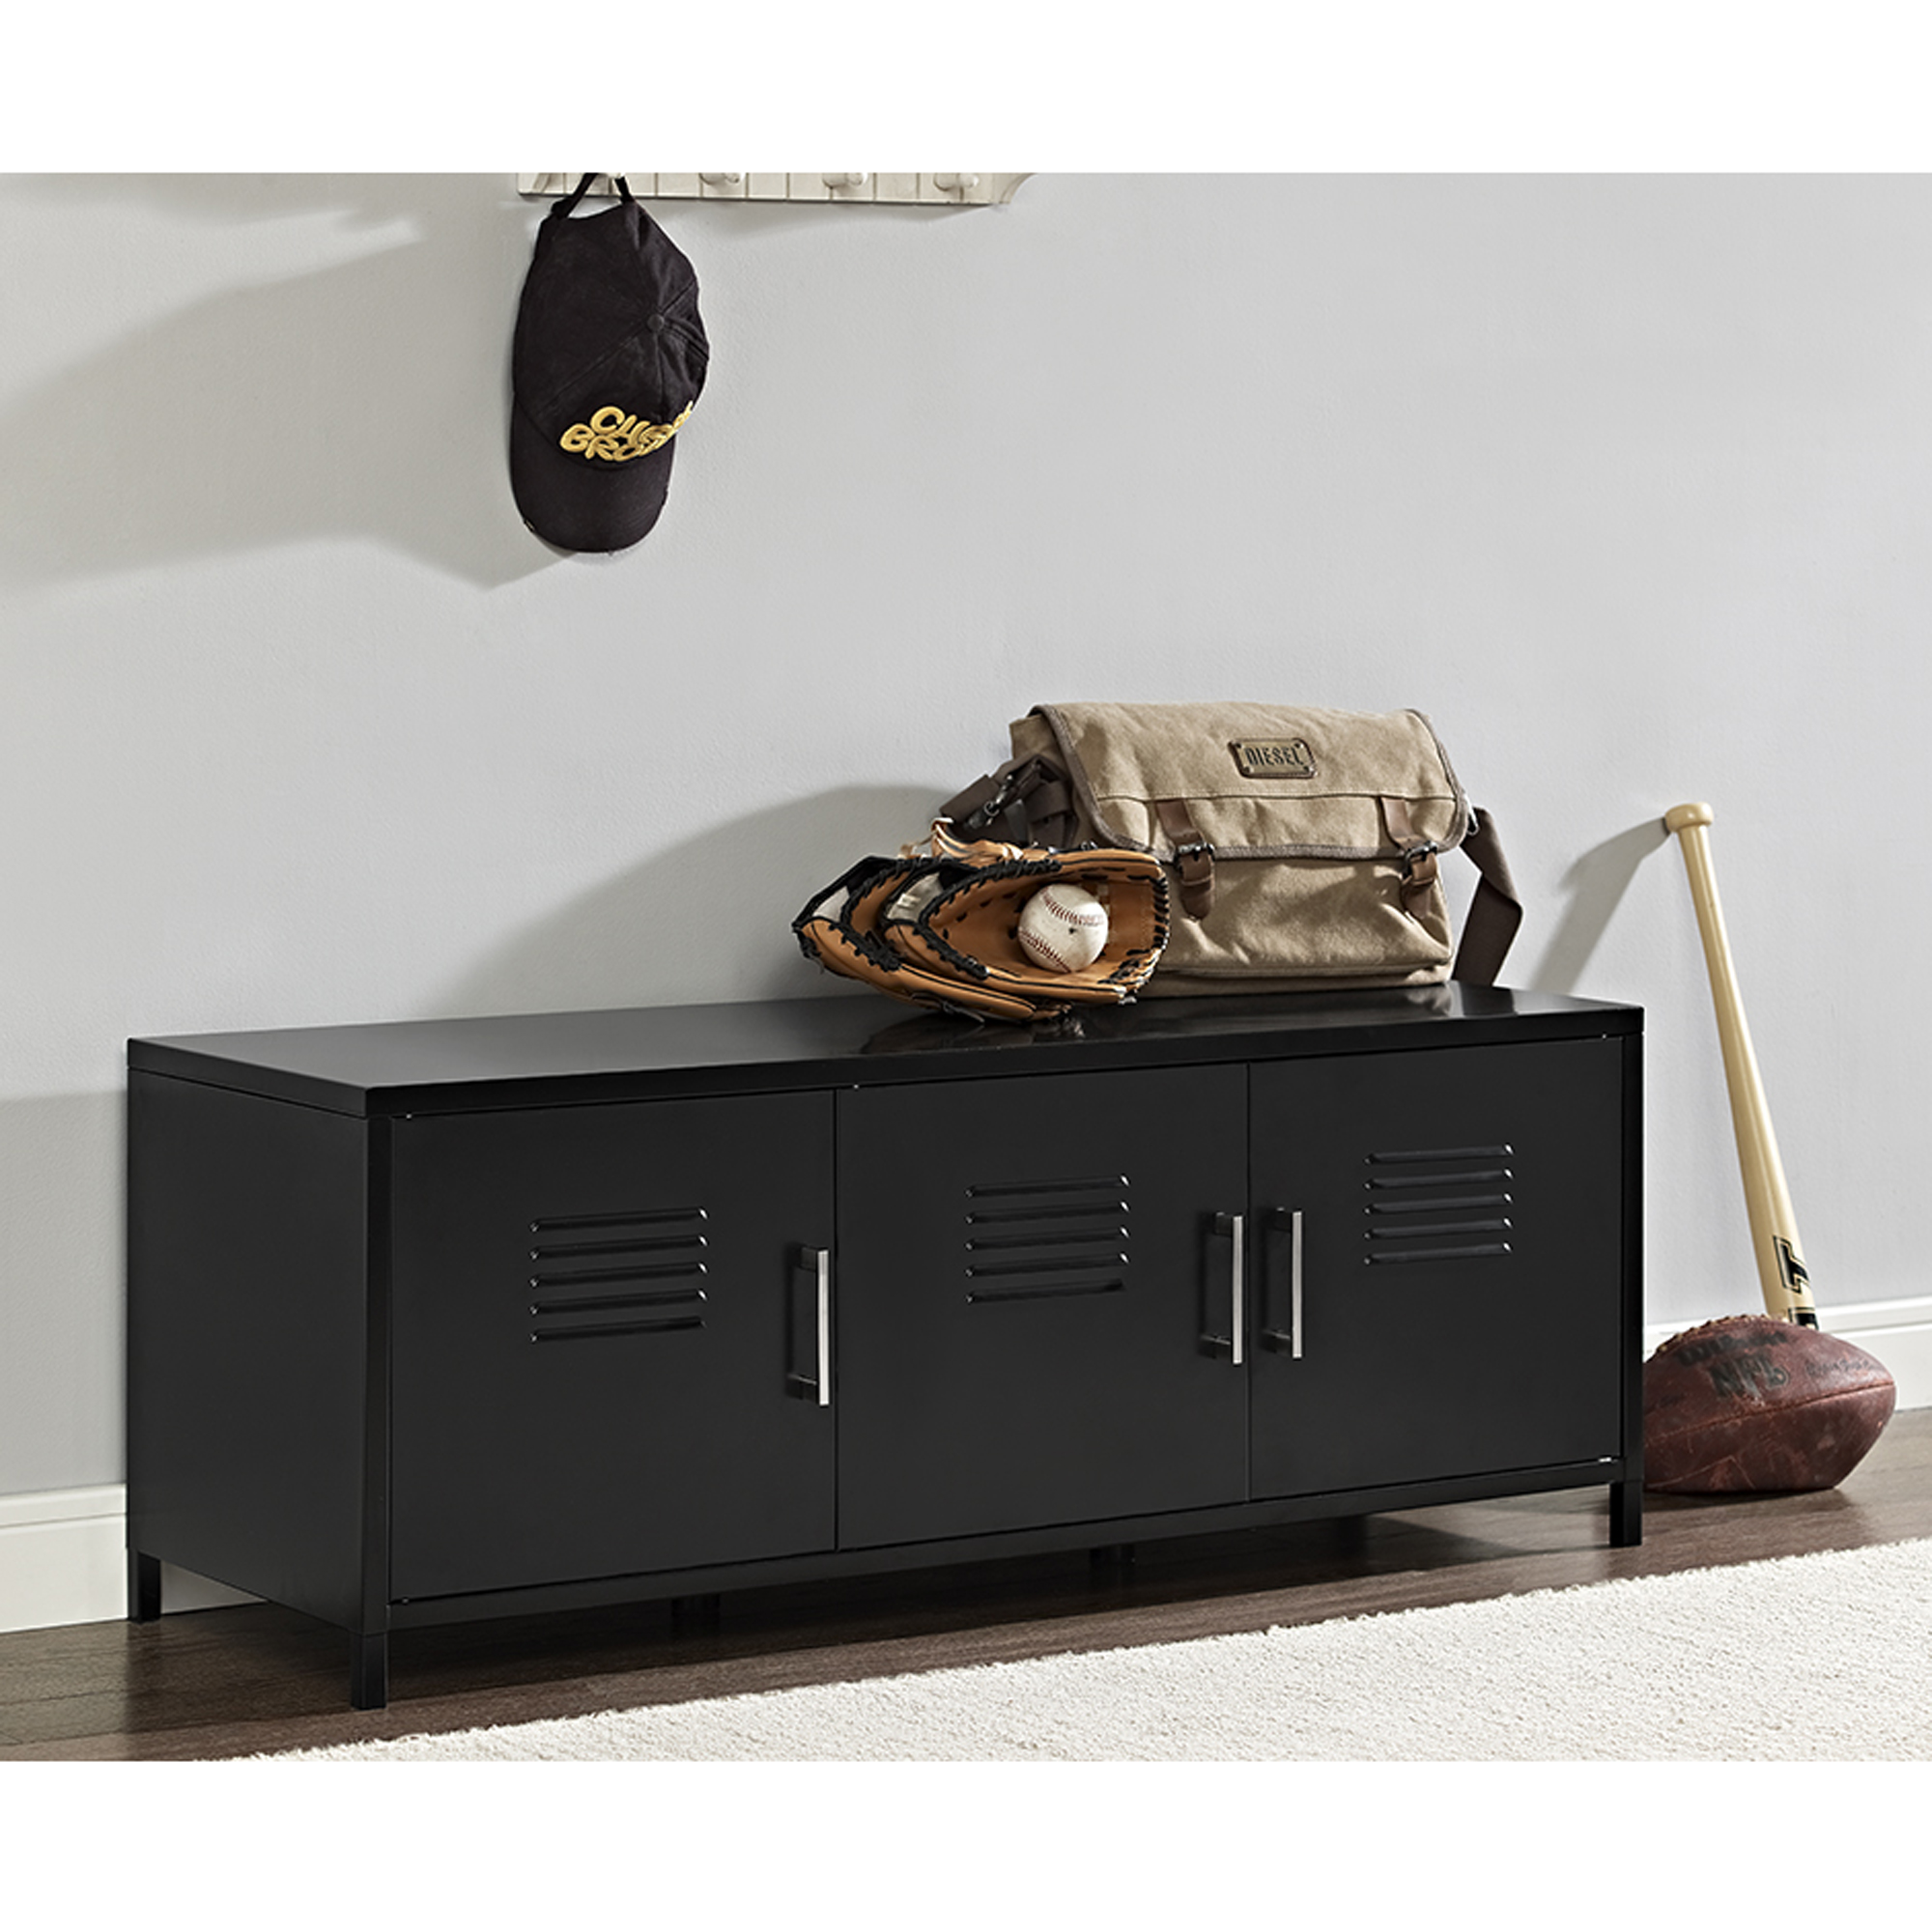 "48"" Metal Locker Style Storage Bench - Black (Multiple Colors Available)"